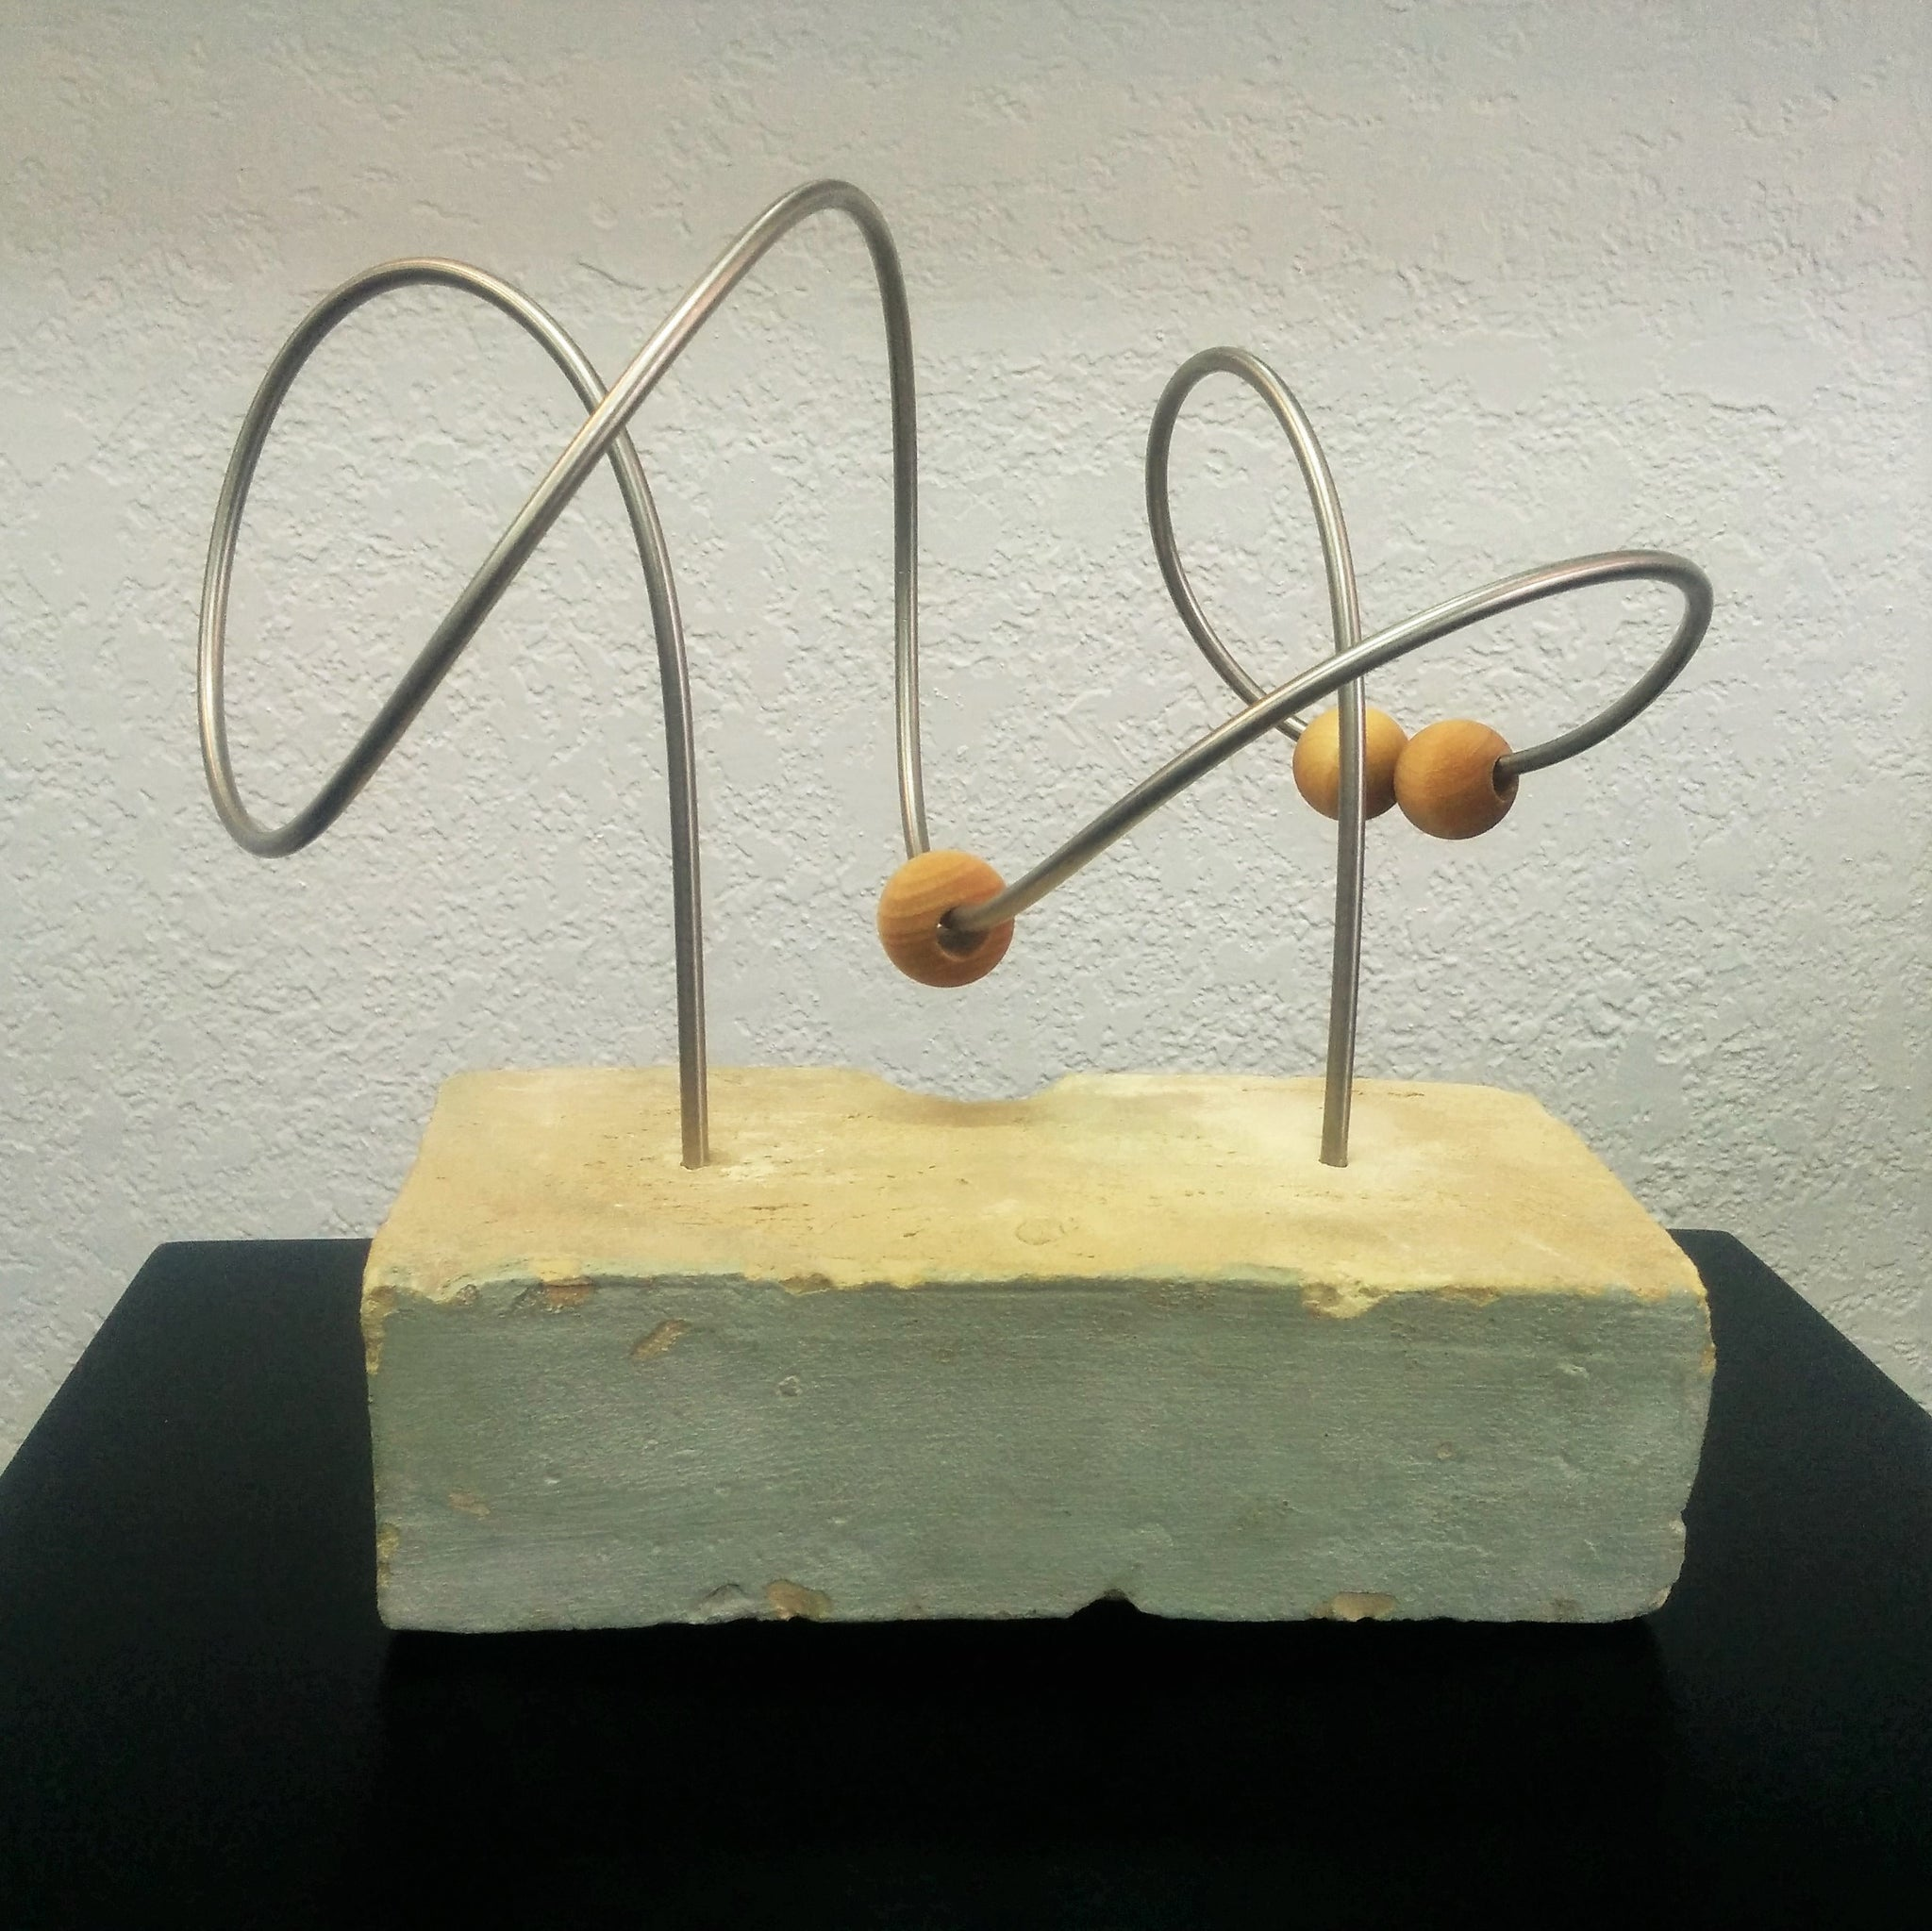 Kinetic Sculpture - Brick # 7